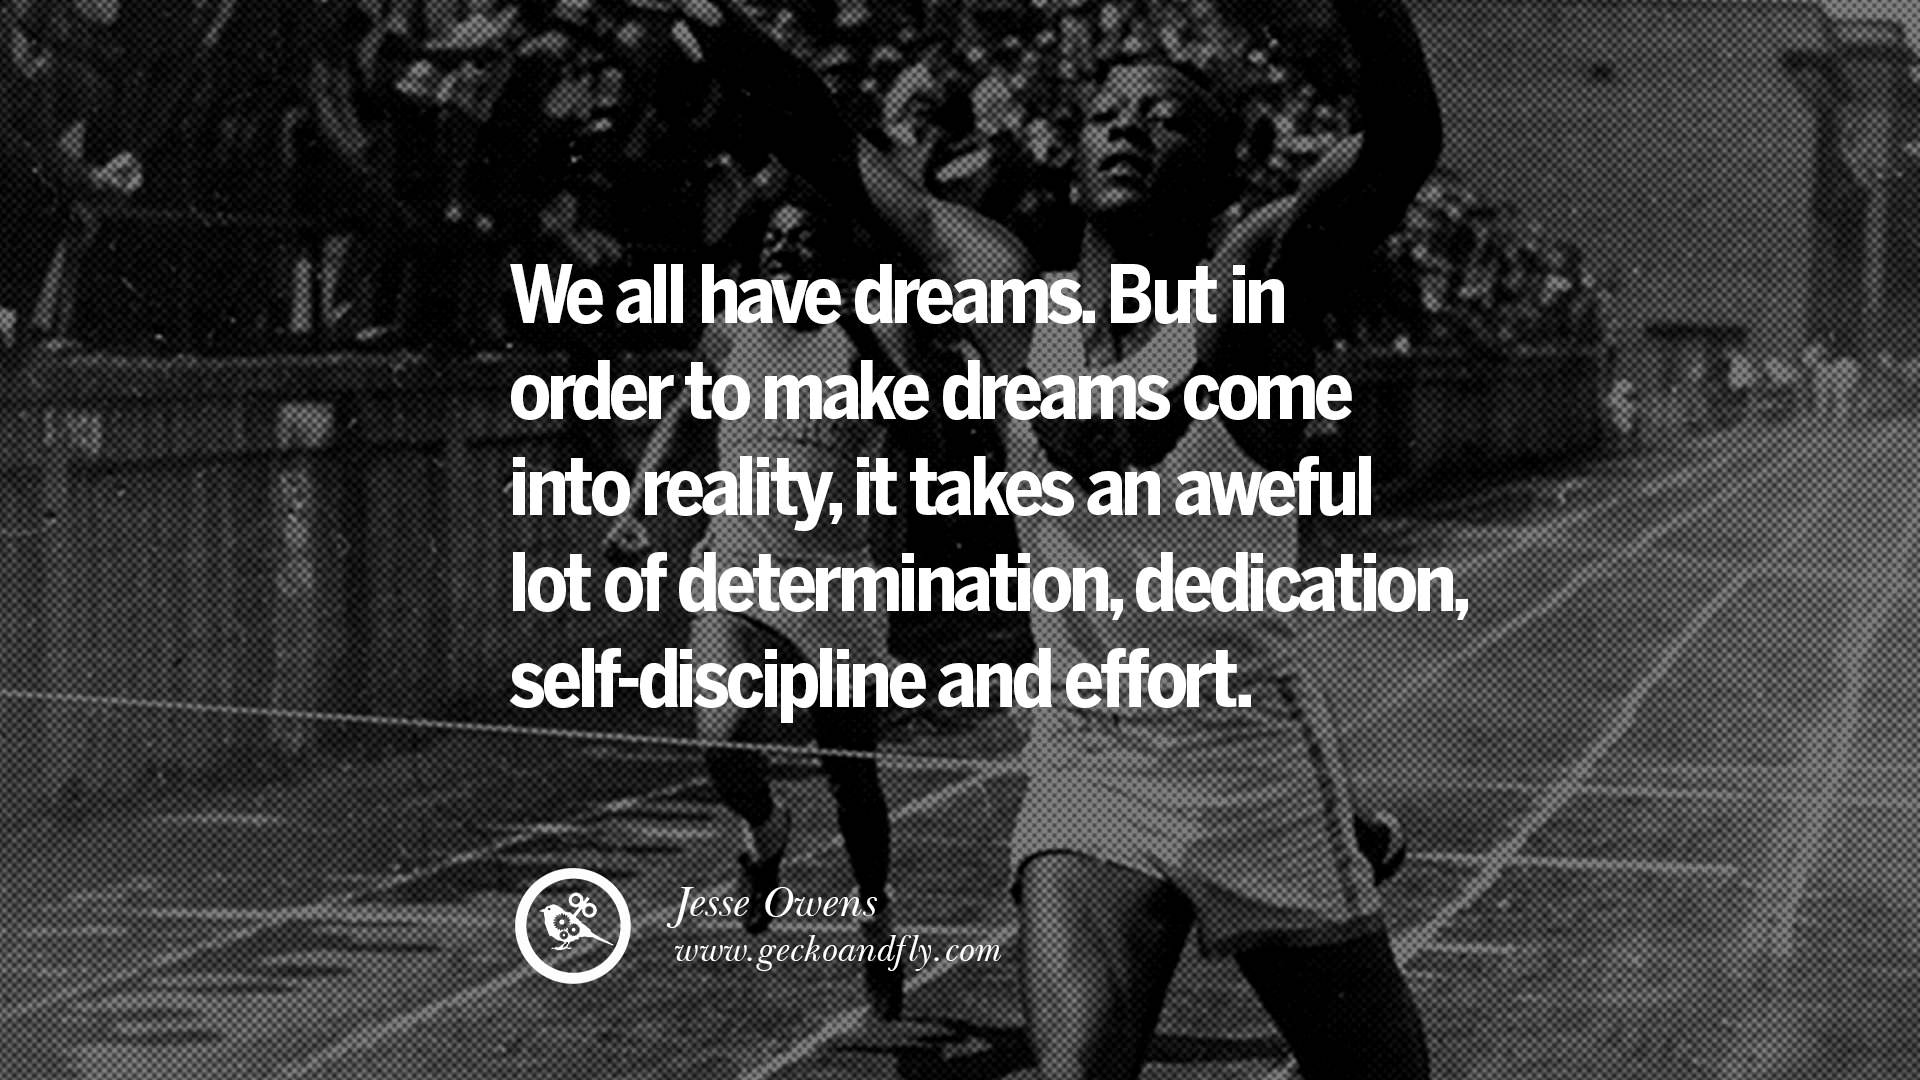 Inspirational Quotes Motivation: 31 Inspirational Quotes By Olympic Athletes On The Spirit